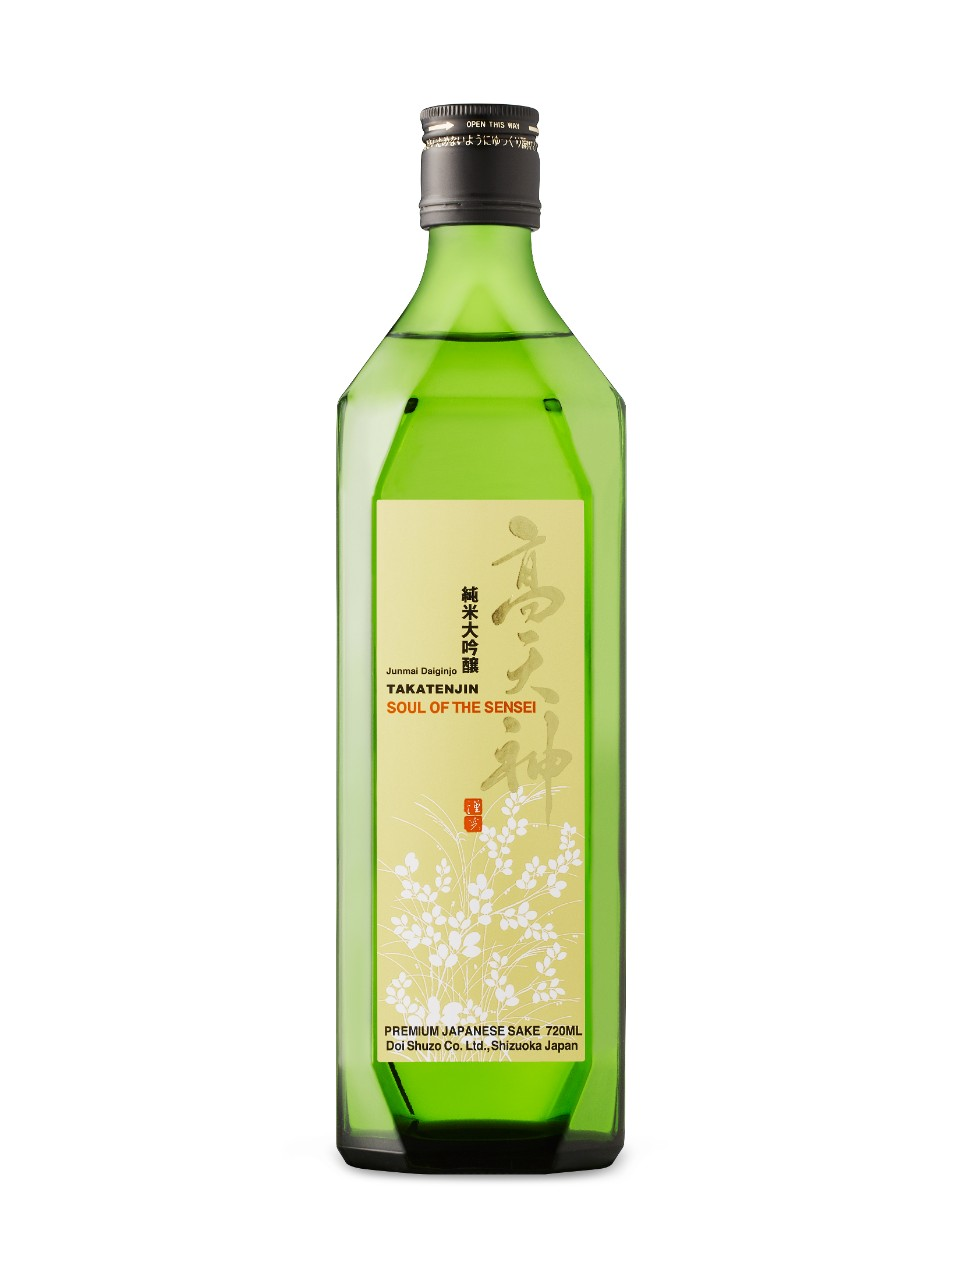 Image for Takatenjin Soul of the Sensei Sake from LCBO